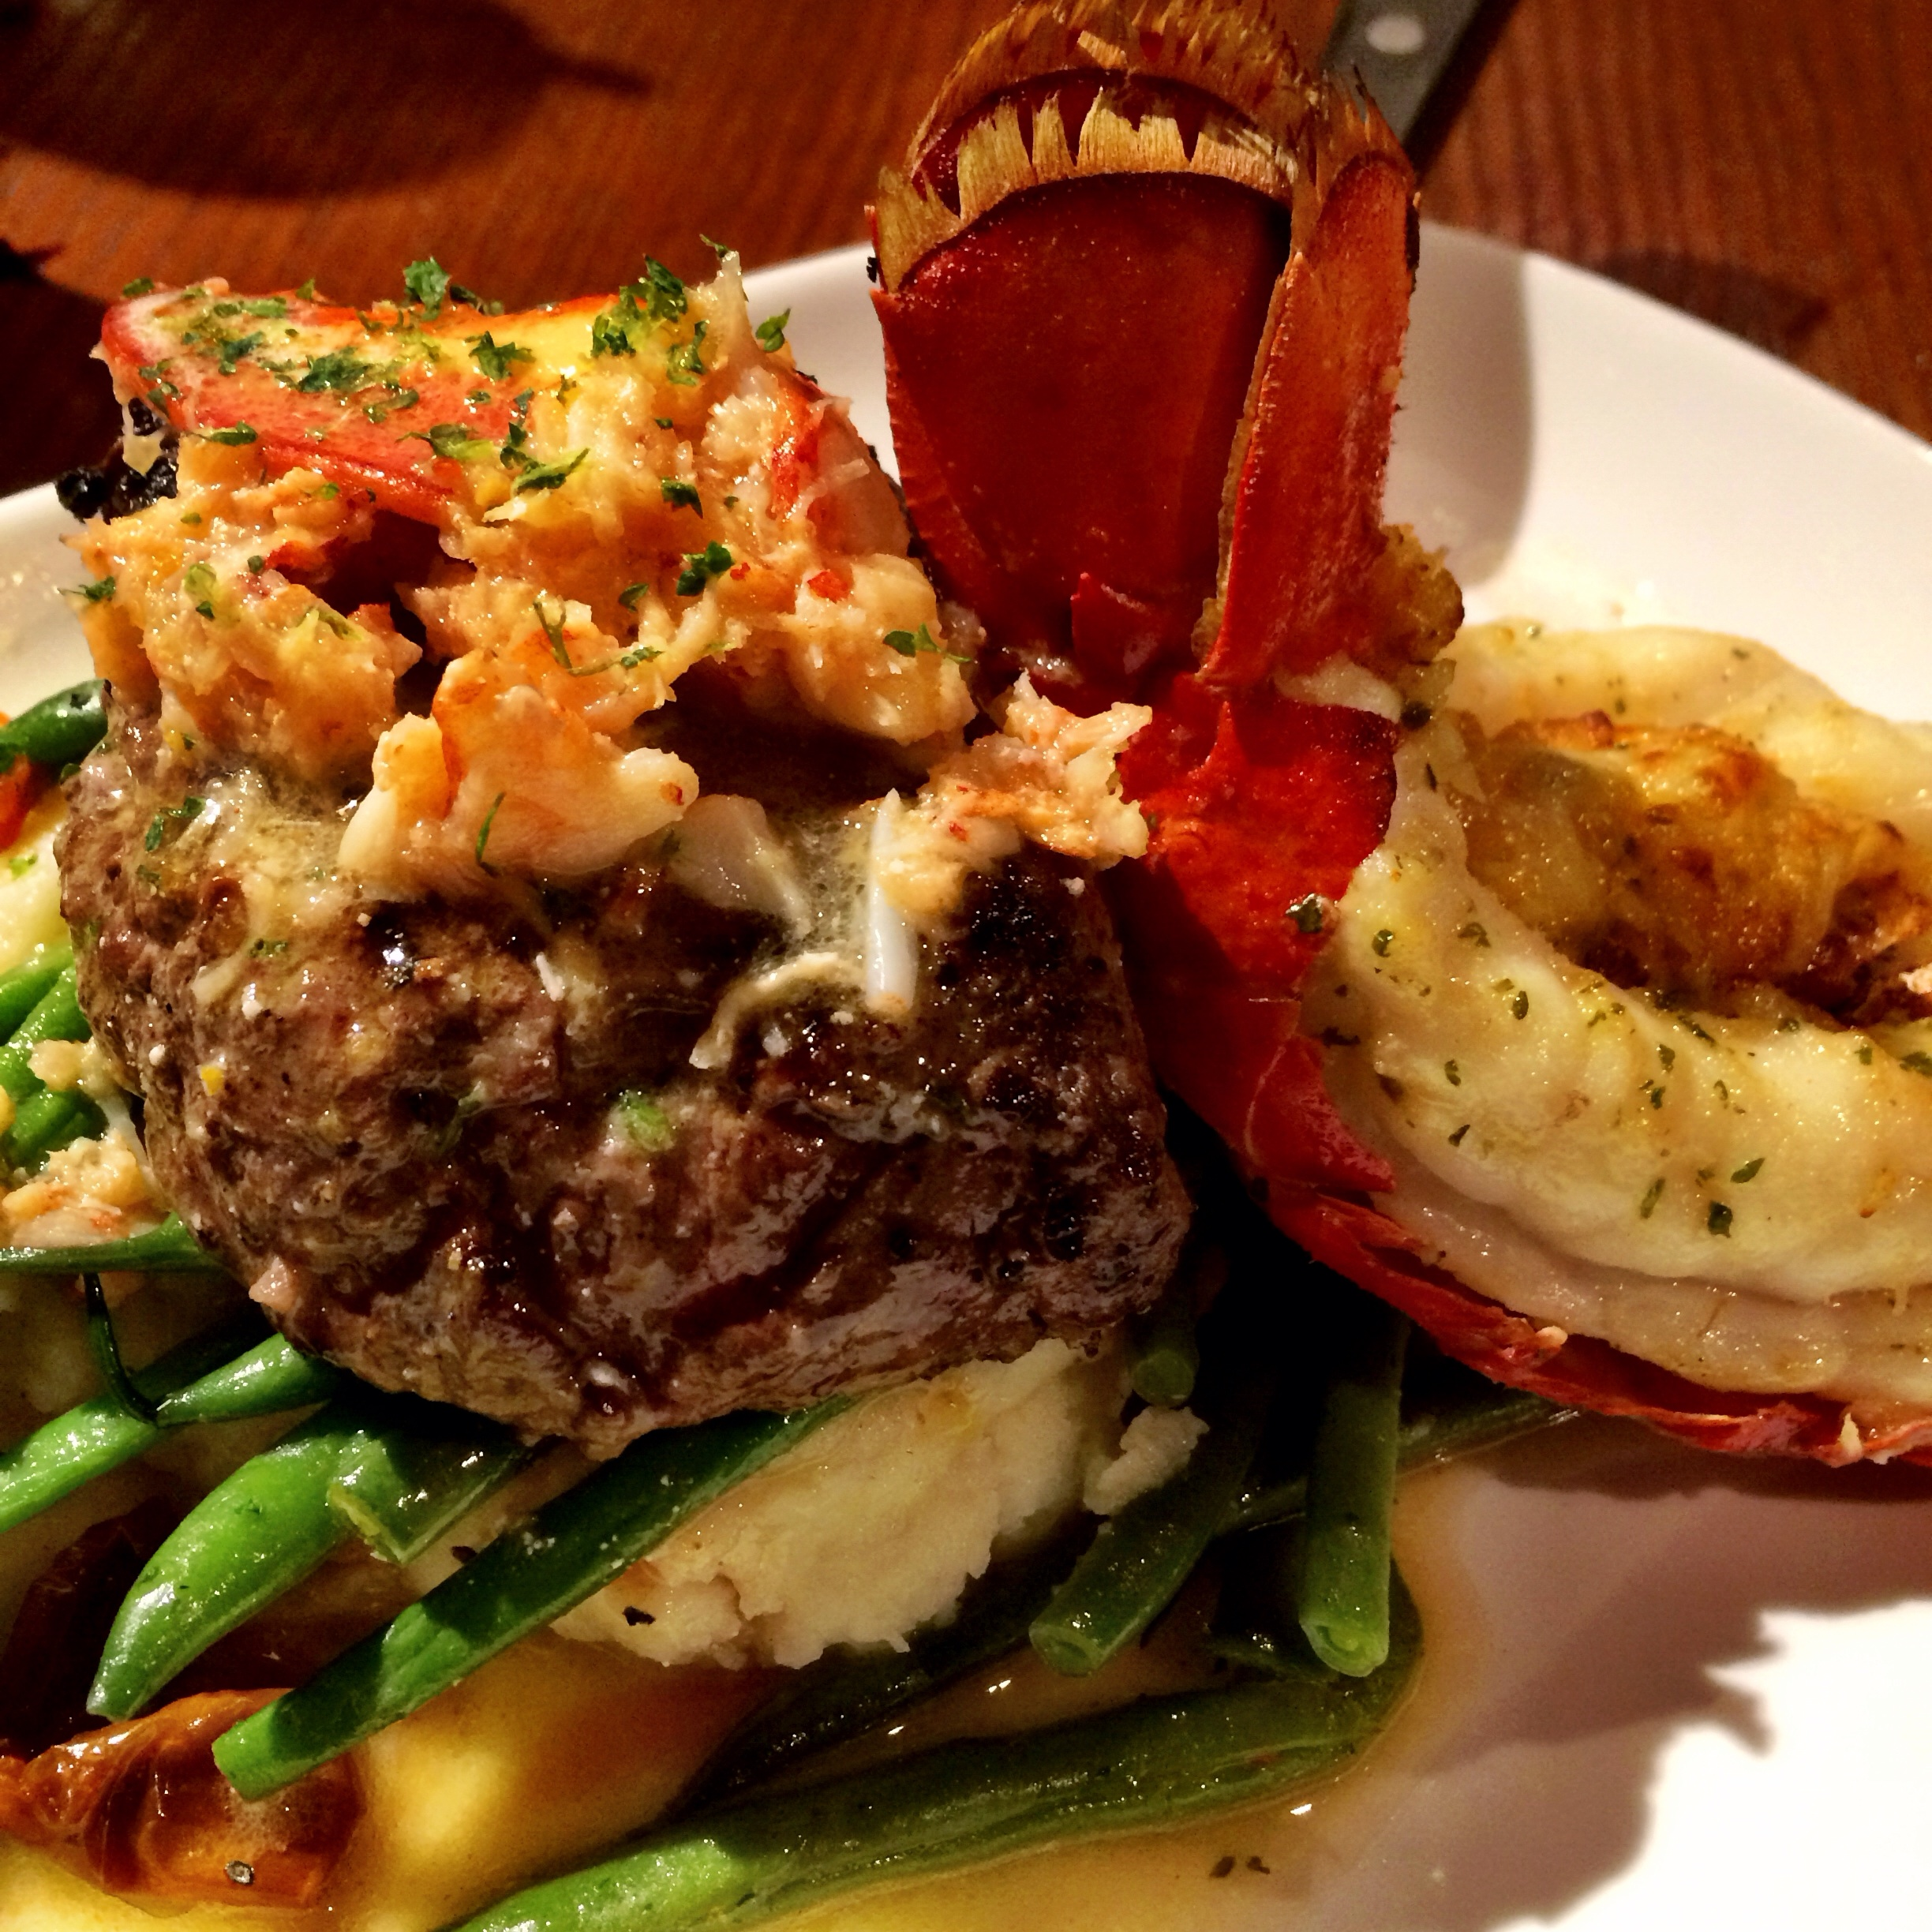 Ultimate Surf and Turf. A Maine lobster tail baked with crab-and-seafood stuffing paired with a peppercorn-seasoned grilled sirloin topped with Maine lobster meat in a citrus-hollandaise sauce. Served over mashed potatoes, roasted tomatoes and green beans